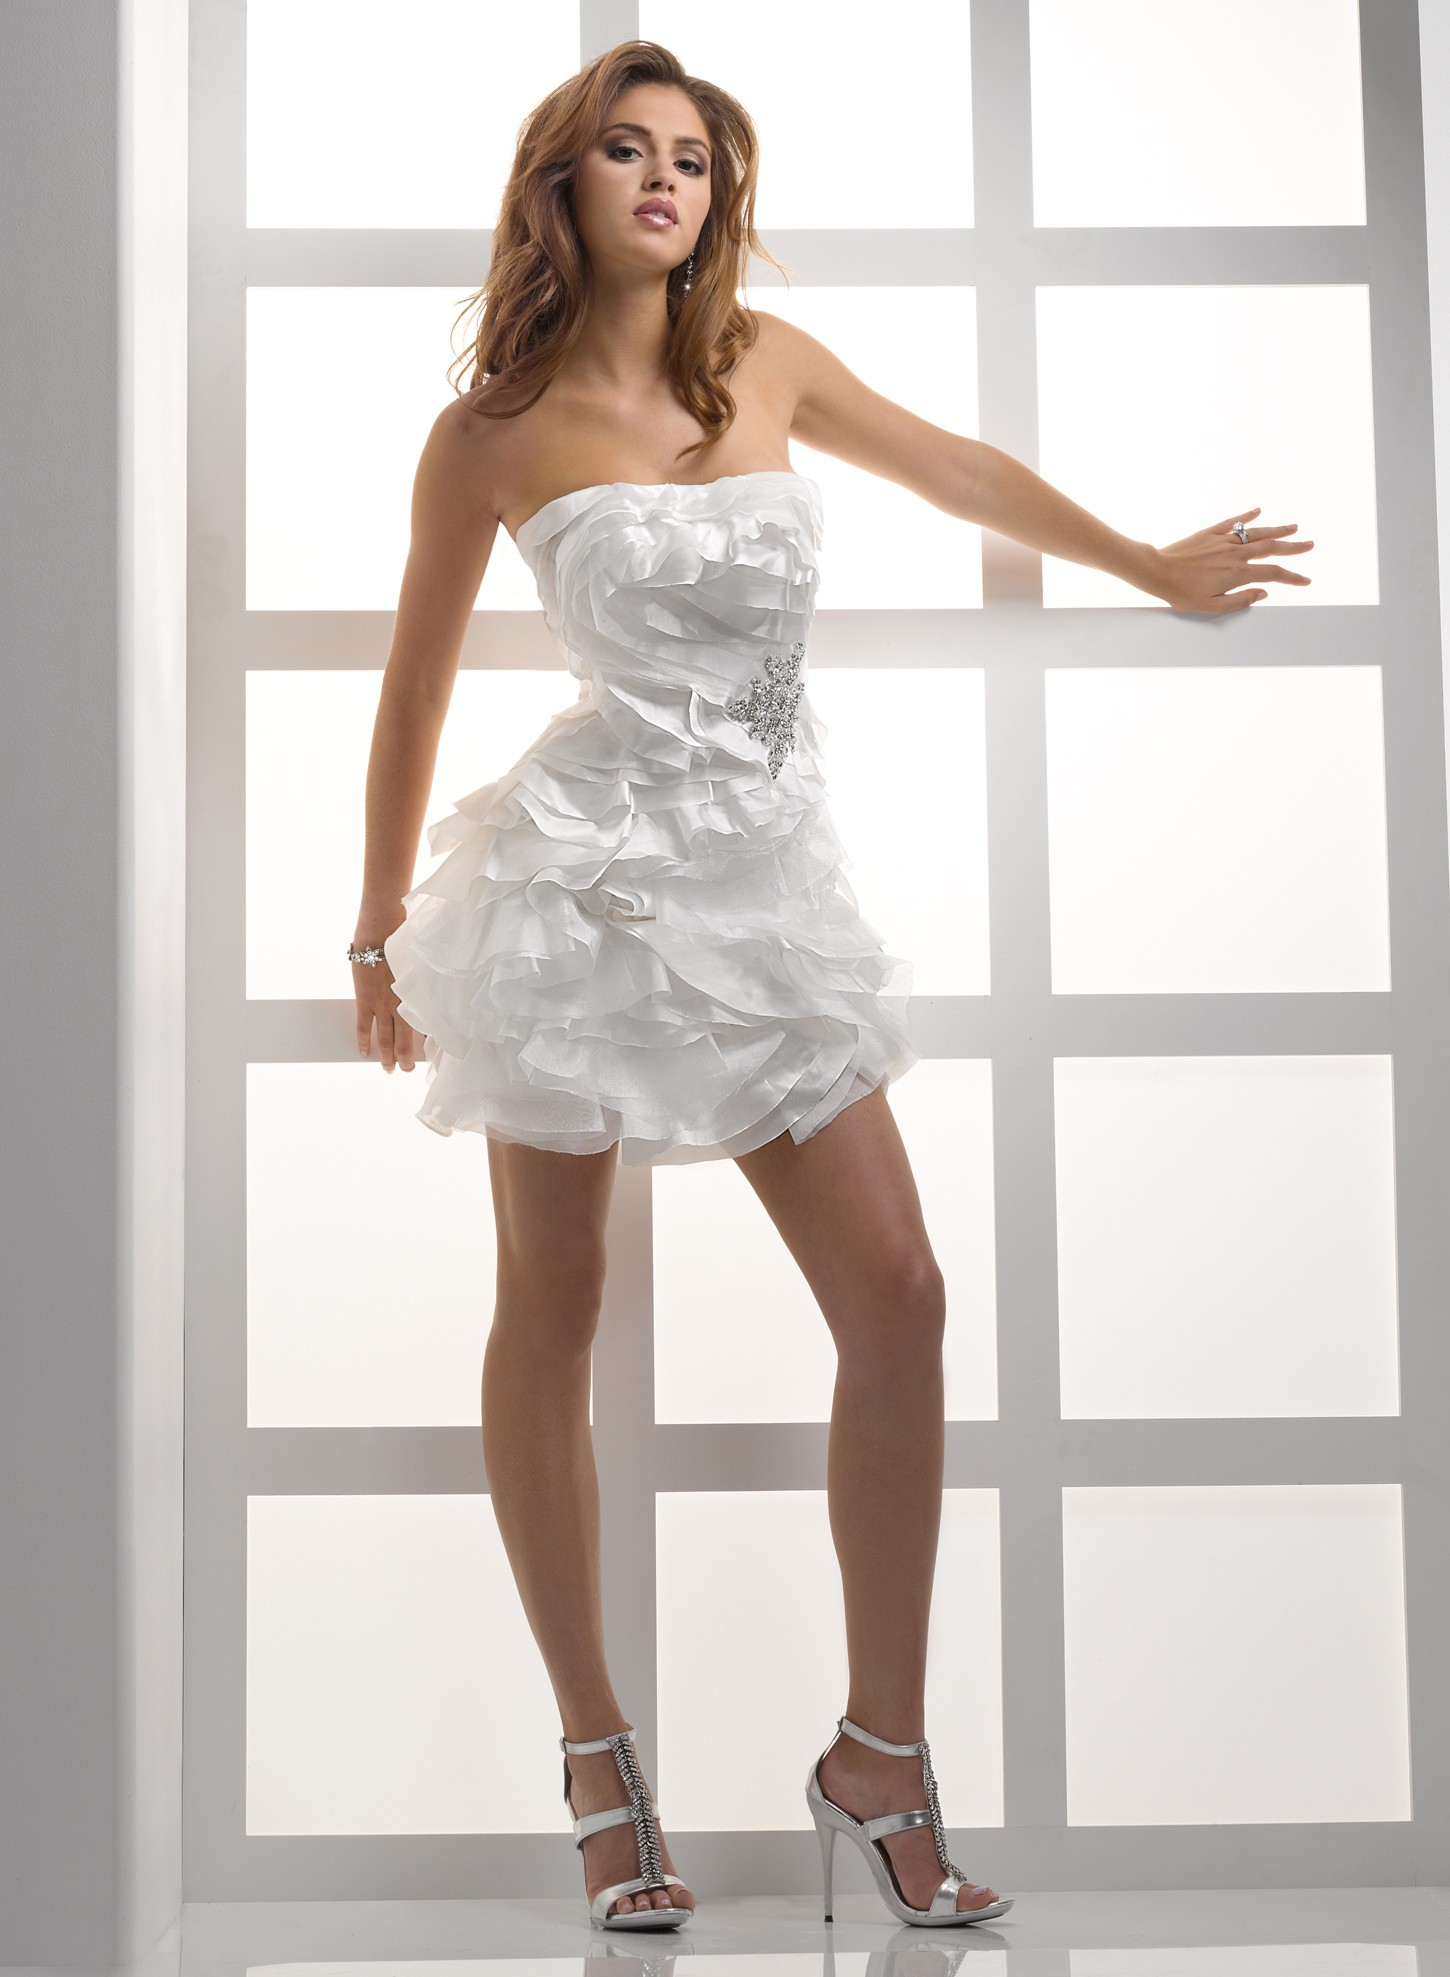 Strapless wedding dresses dressed up girl for Good wedding dresses for short brides